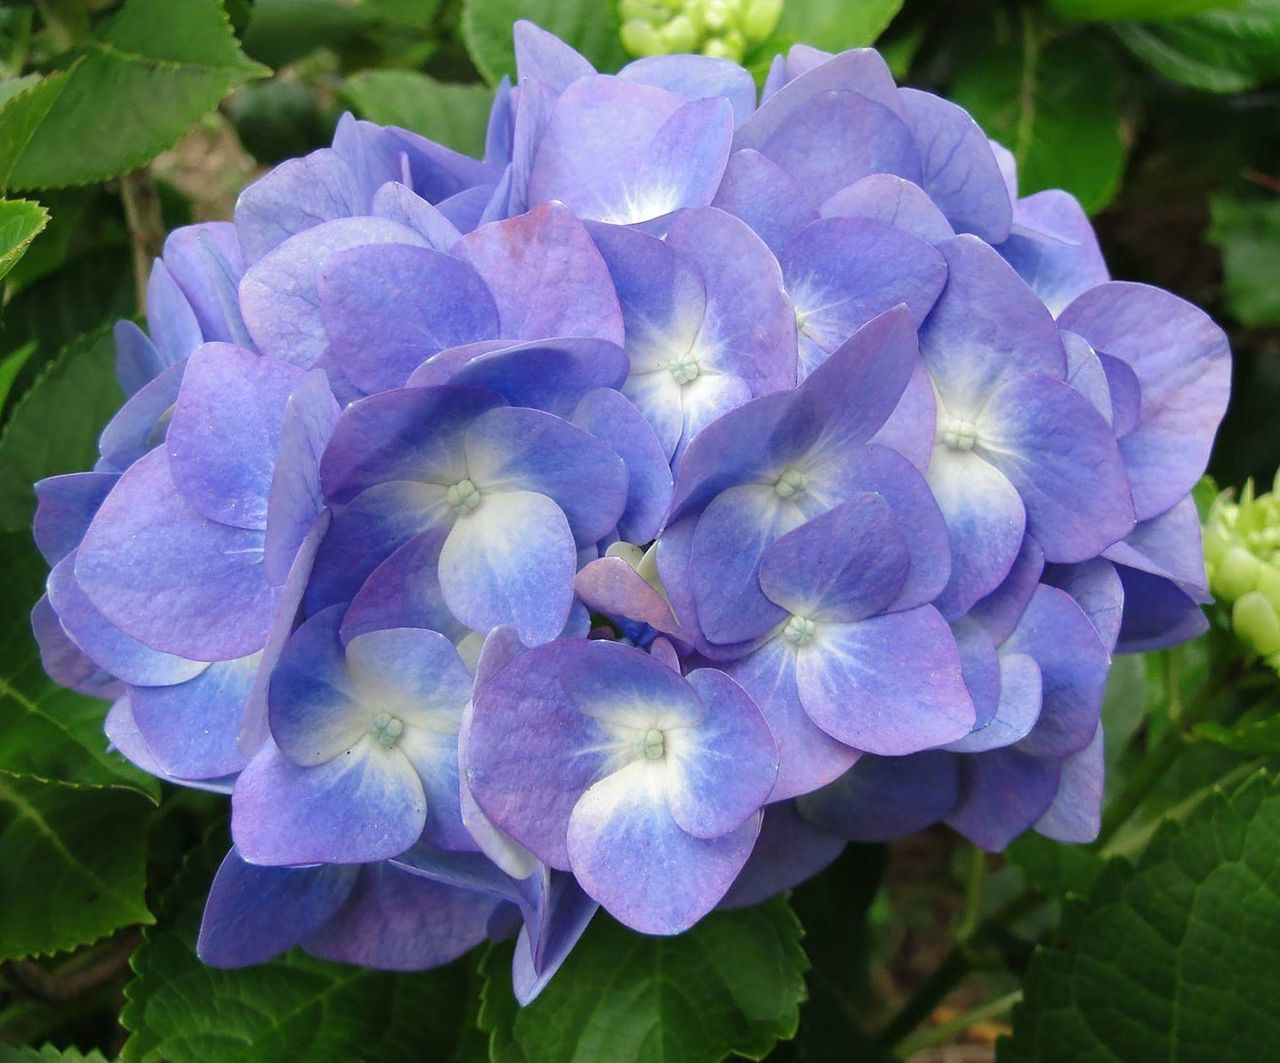 flower, beauty in nature, petal, nature, growth, fragility, plant, freshness, hydrangea, day, flower head, purple, blooming, outdoors, no people, close-up, focus on foreground, leaf